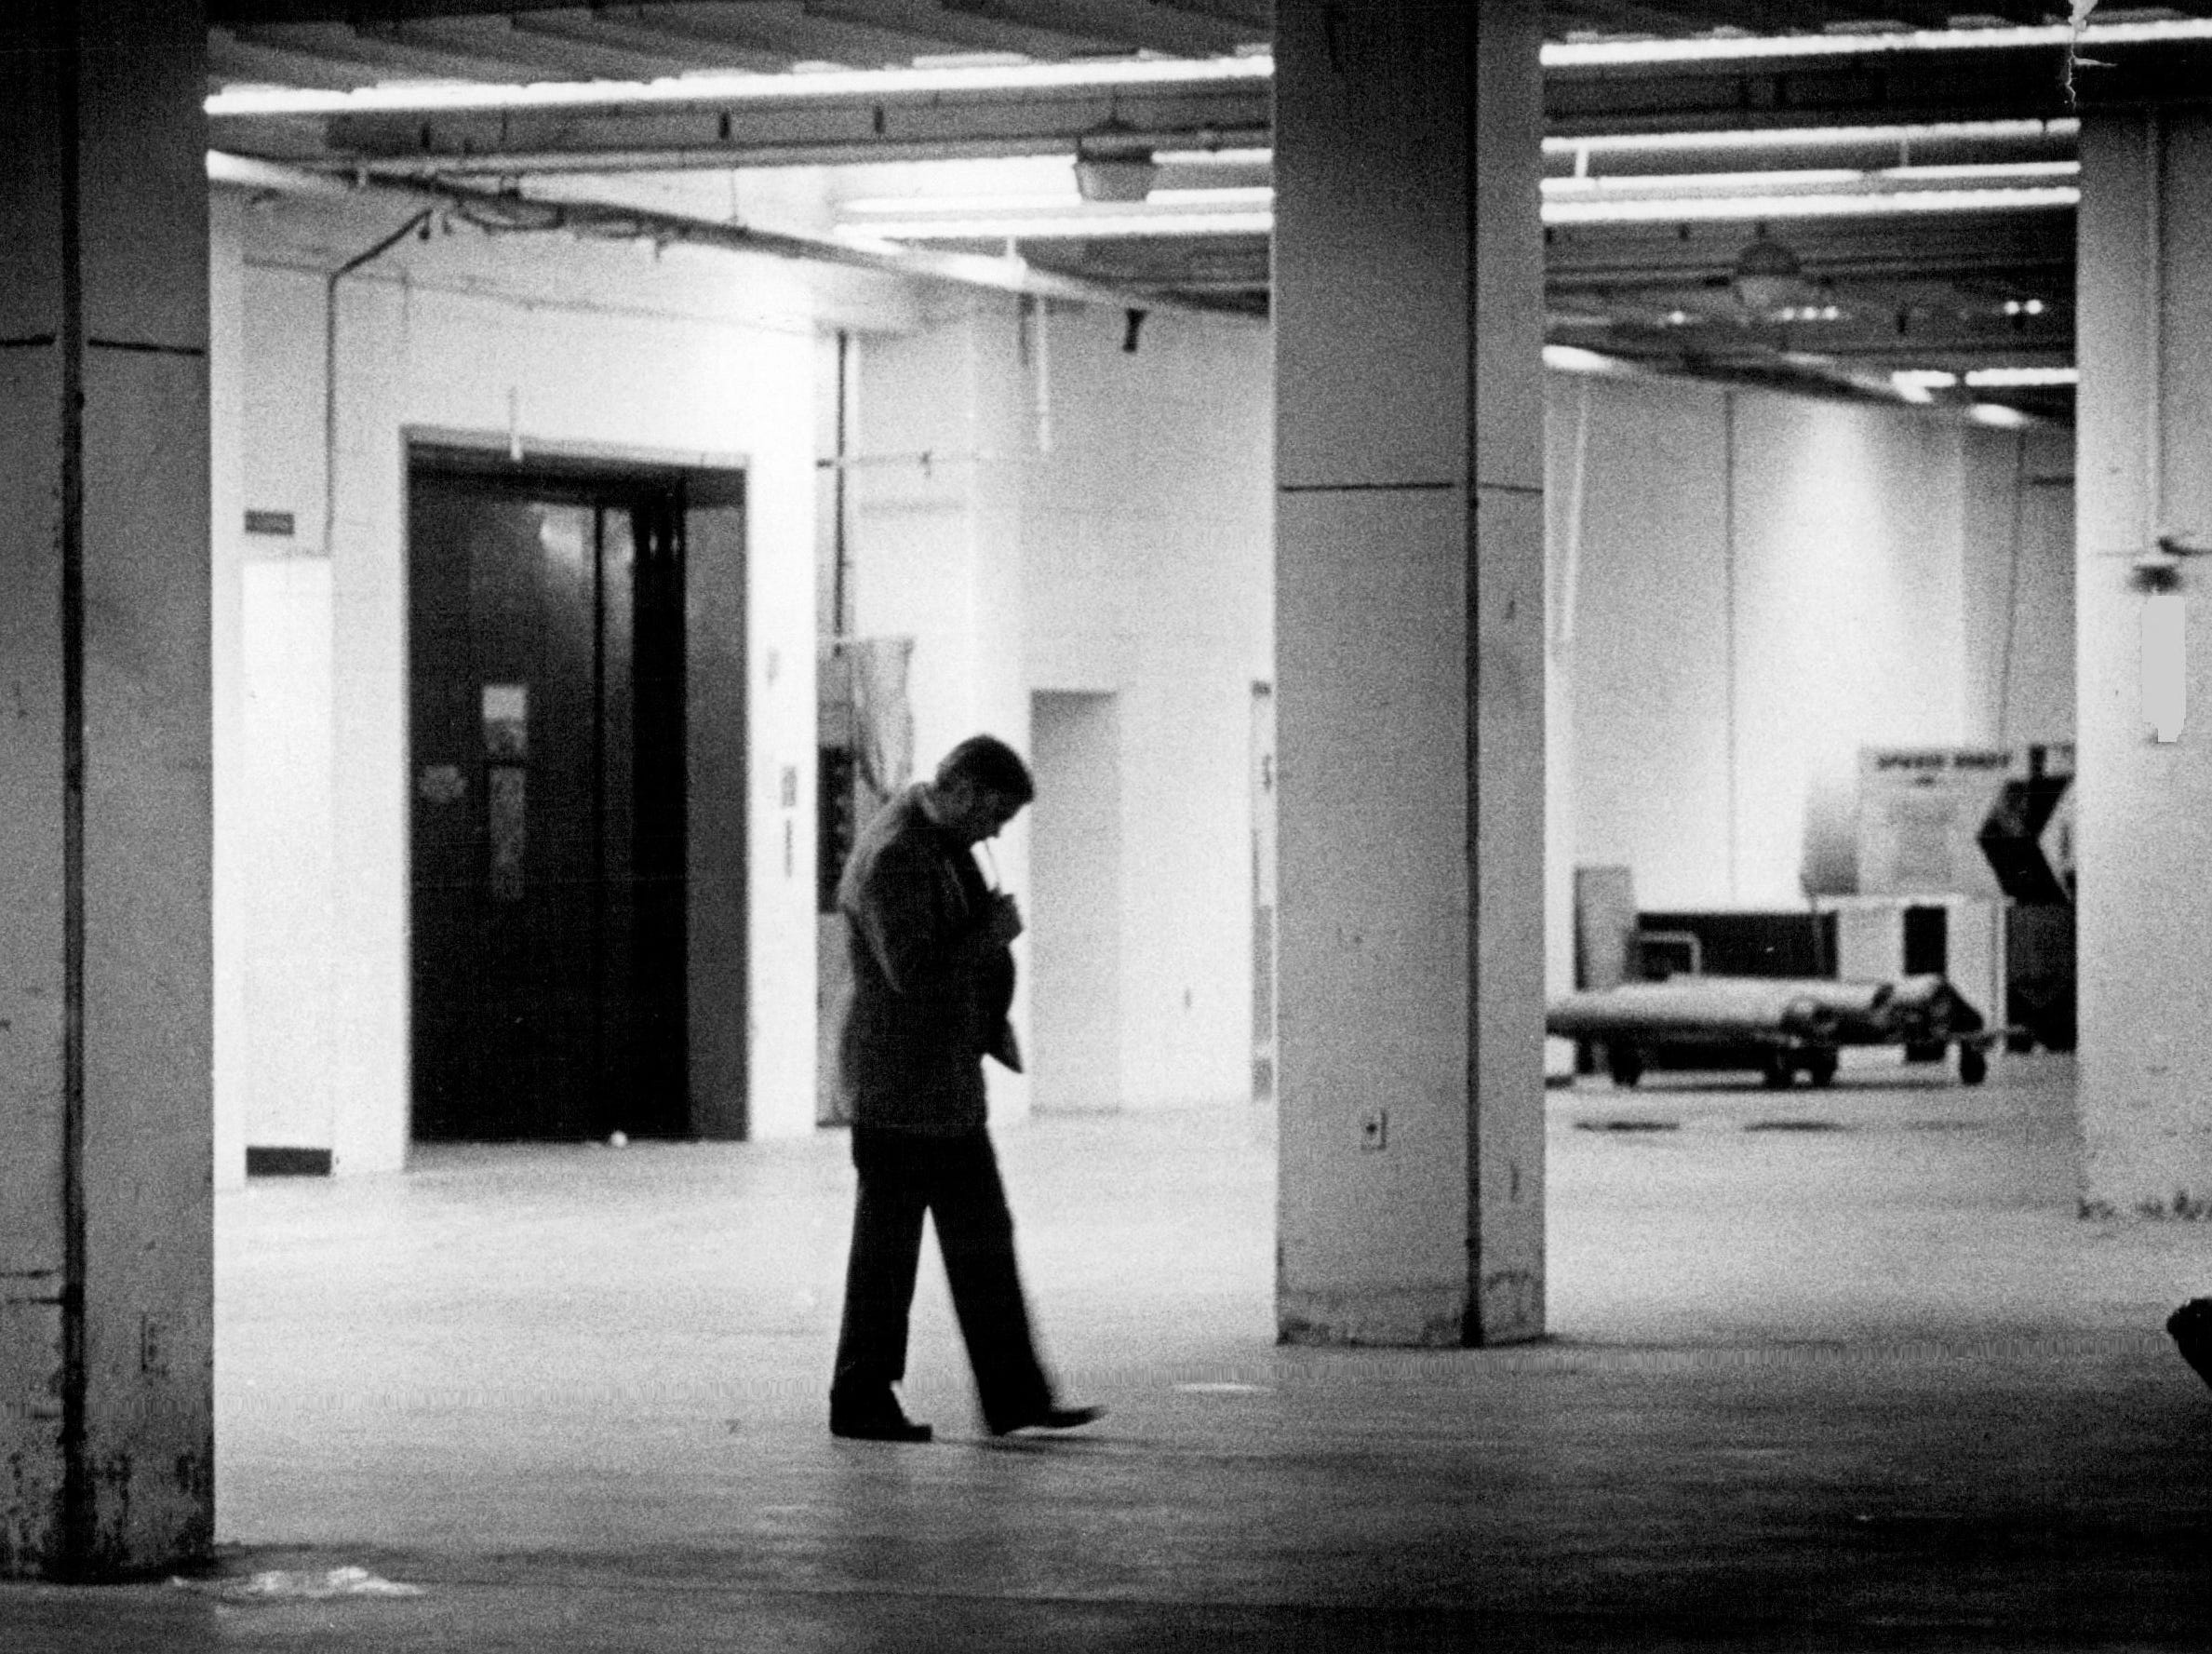 Joe Crozier paces quietly in the basement of a Baltimore parking garage following a loss in 1984.